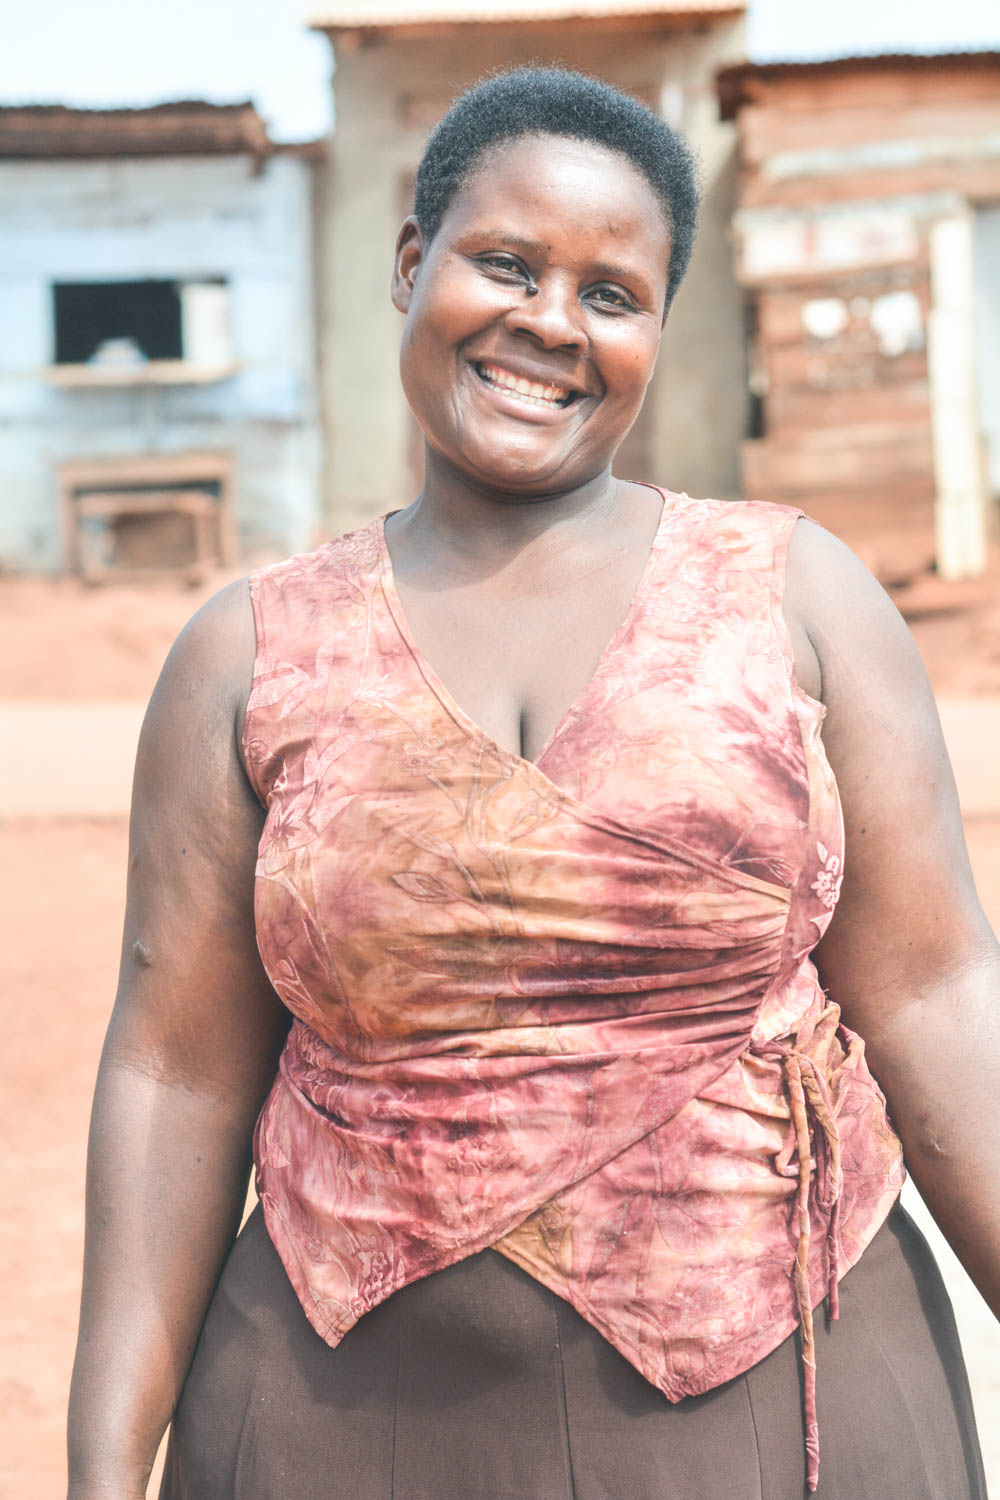 Naluyange Cathy is the mother to five boys (including two sets of twins!), and Mabira's Production Manager. Due to her employment at Mabira, she was recently able to move her family from one of Lugazi's rougher slum communities to an apartment with running water!